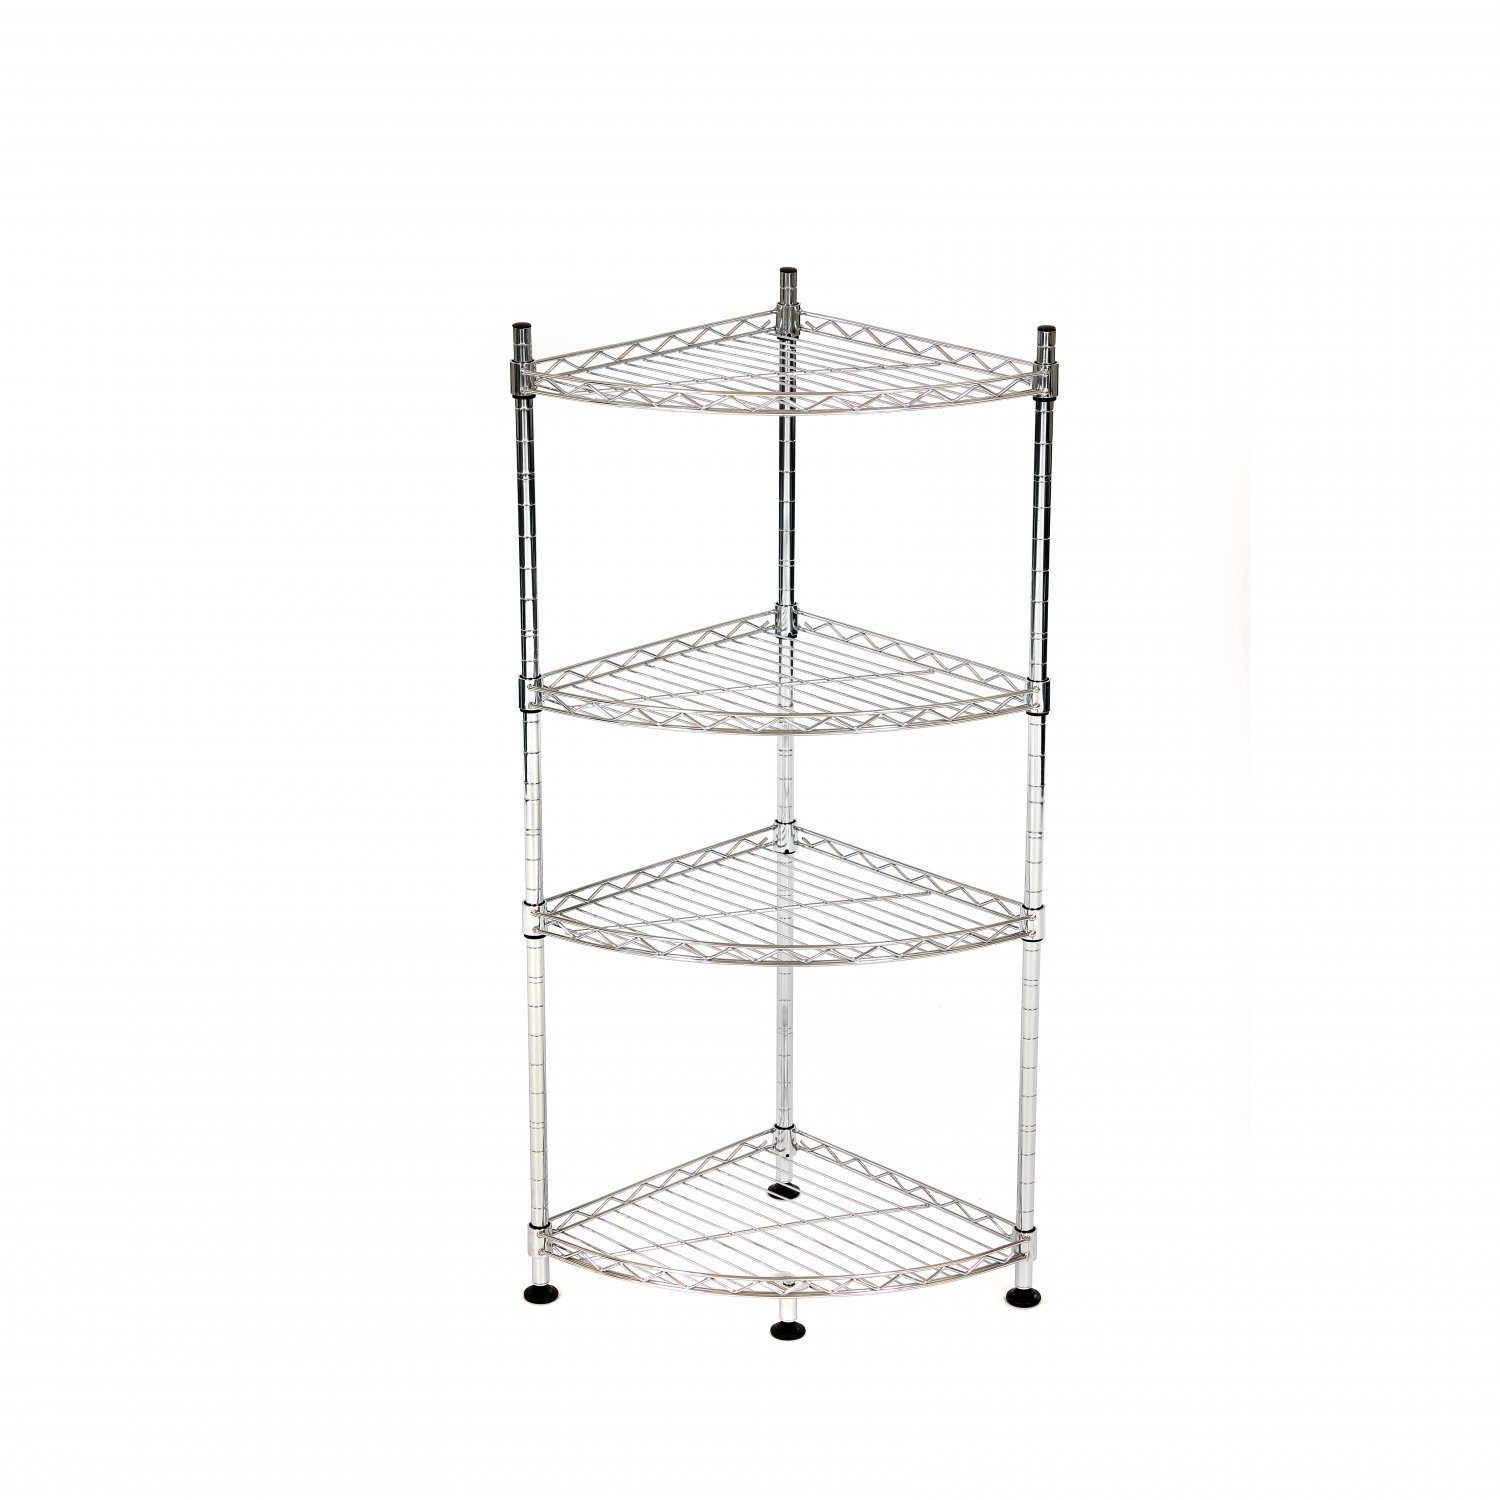 4 Tier Heavy Duty Steel Wire Rack Bathroom Corner Storage